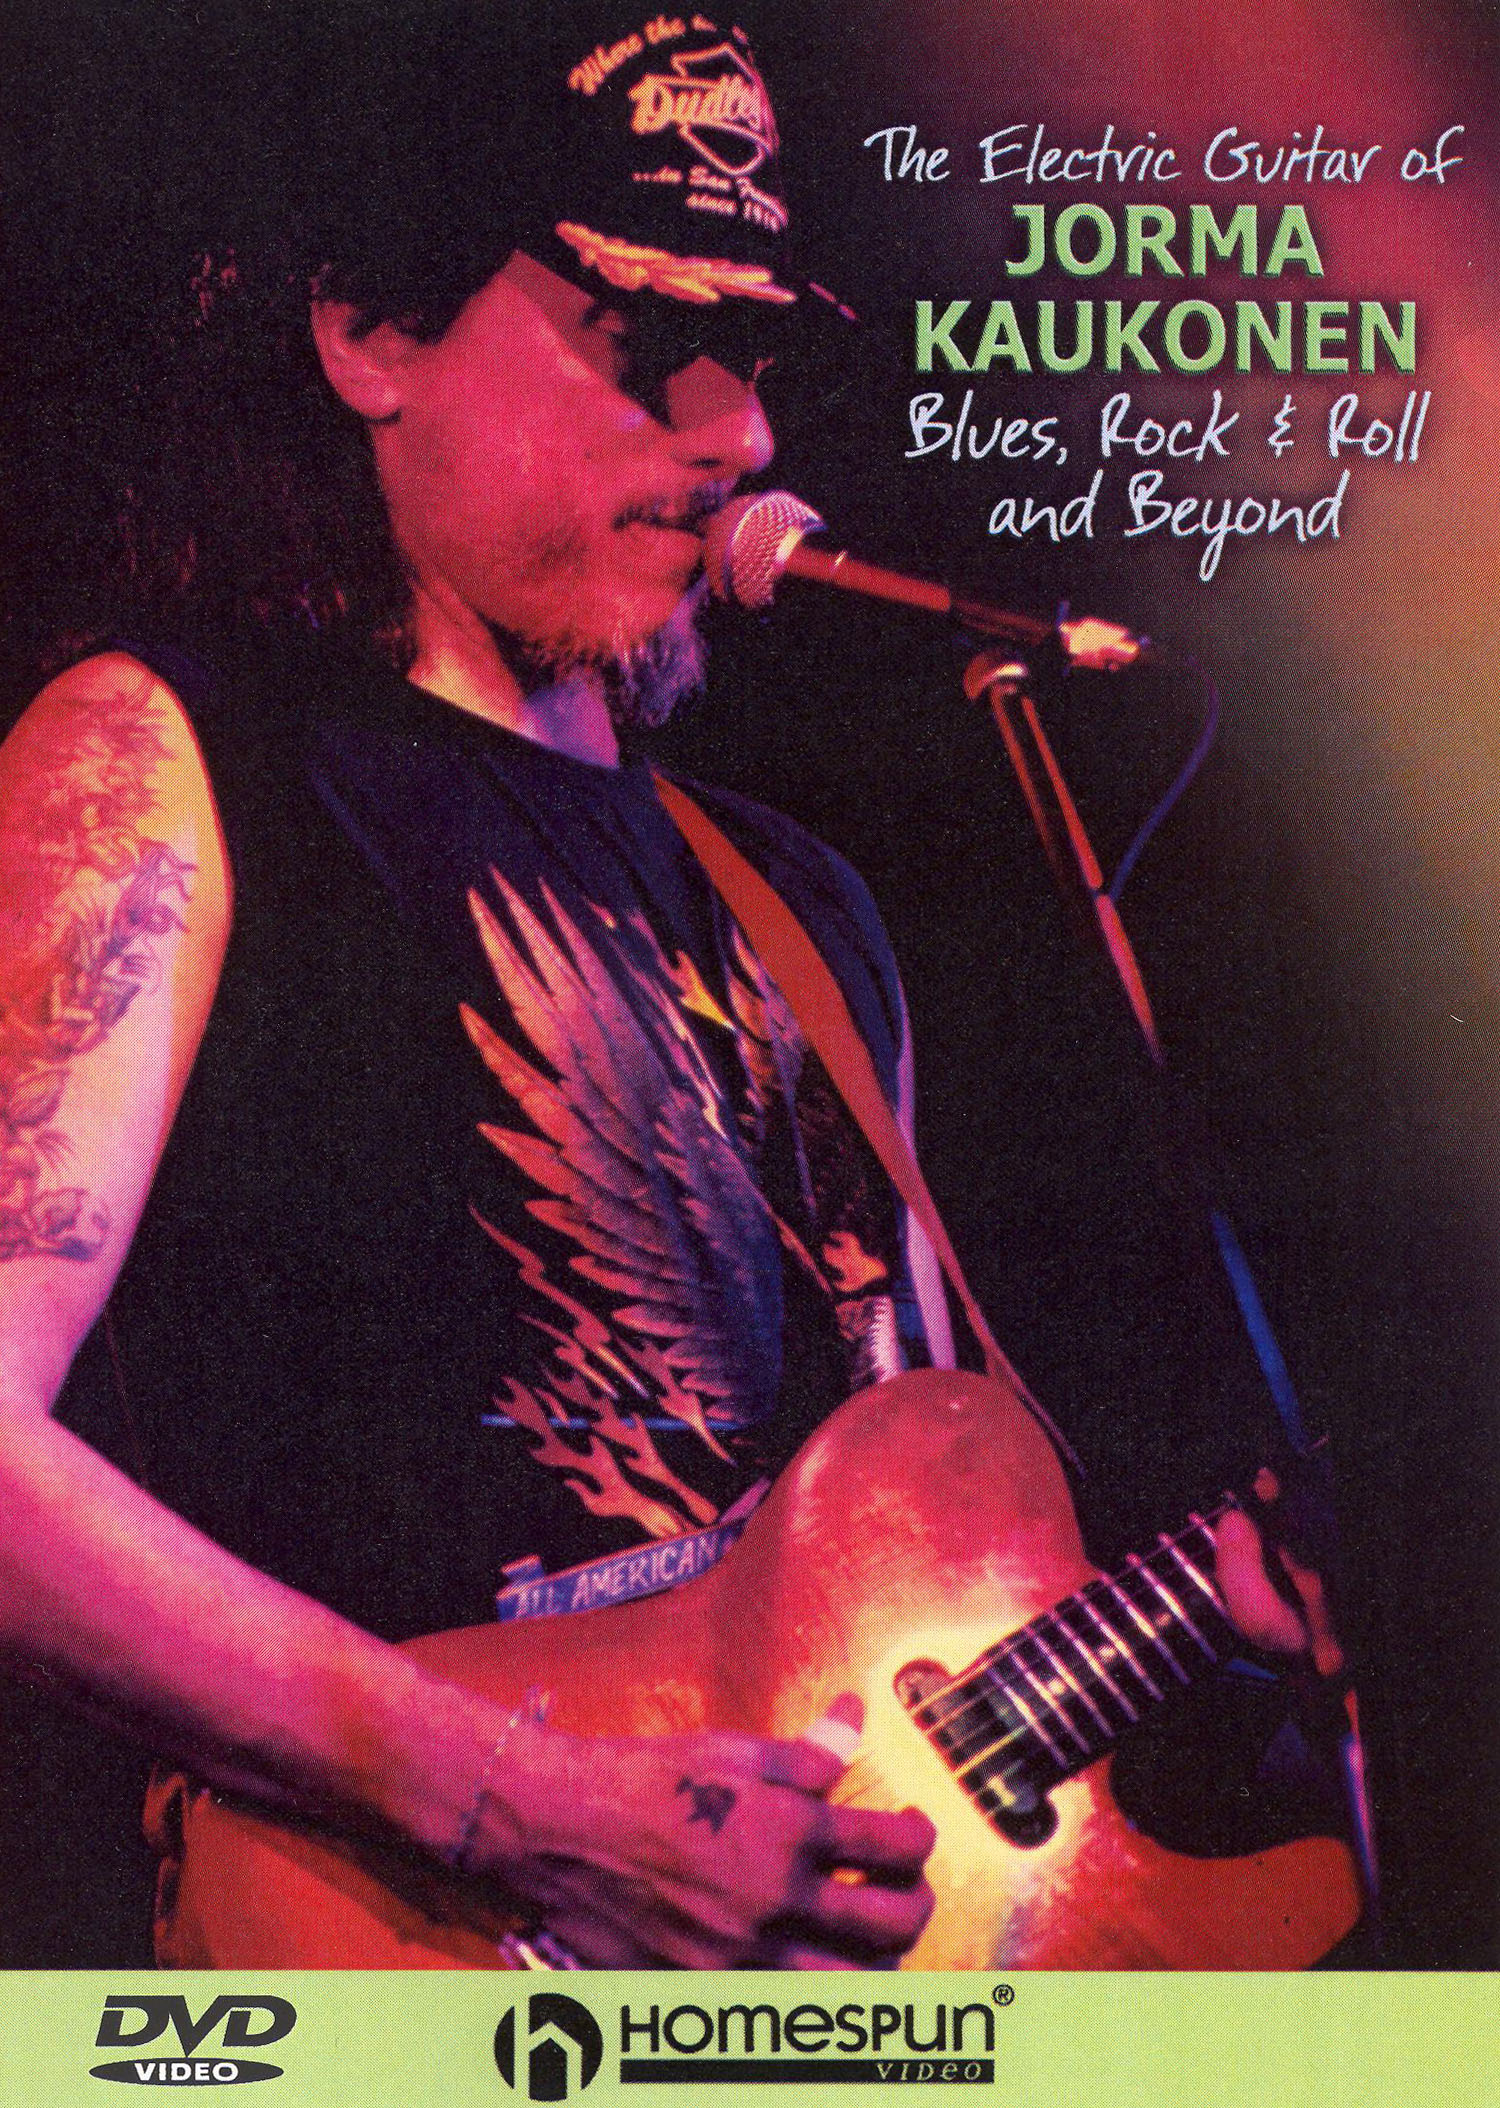 The Electric Guitar of Jorma Kaukonen: Blues, Rock 'n' Roll and Beyond